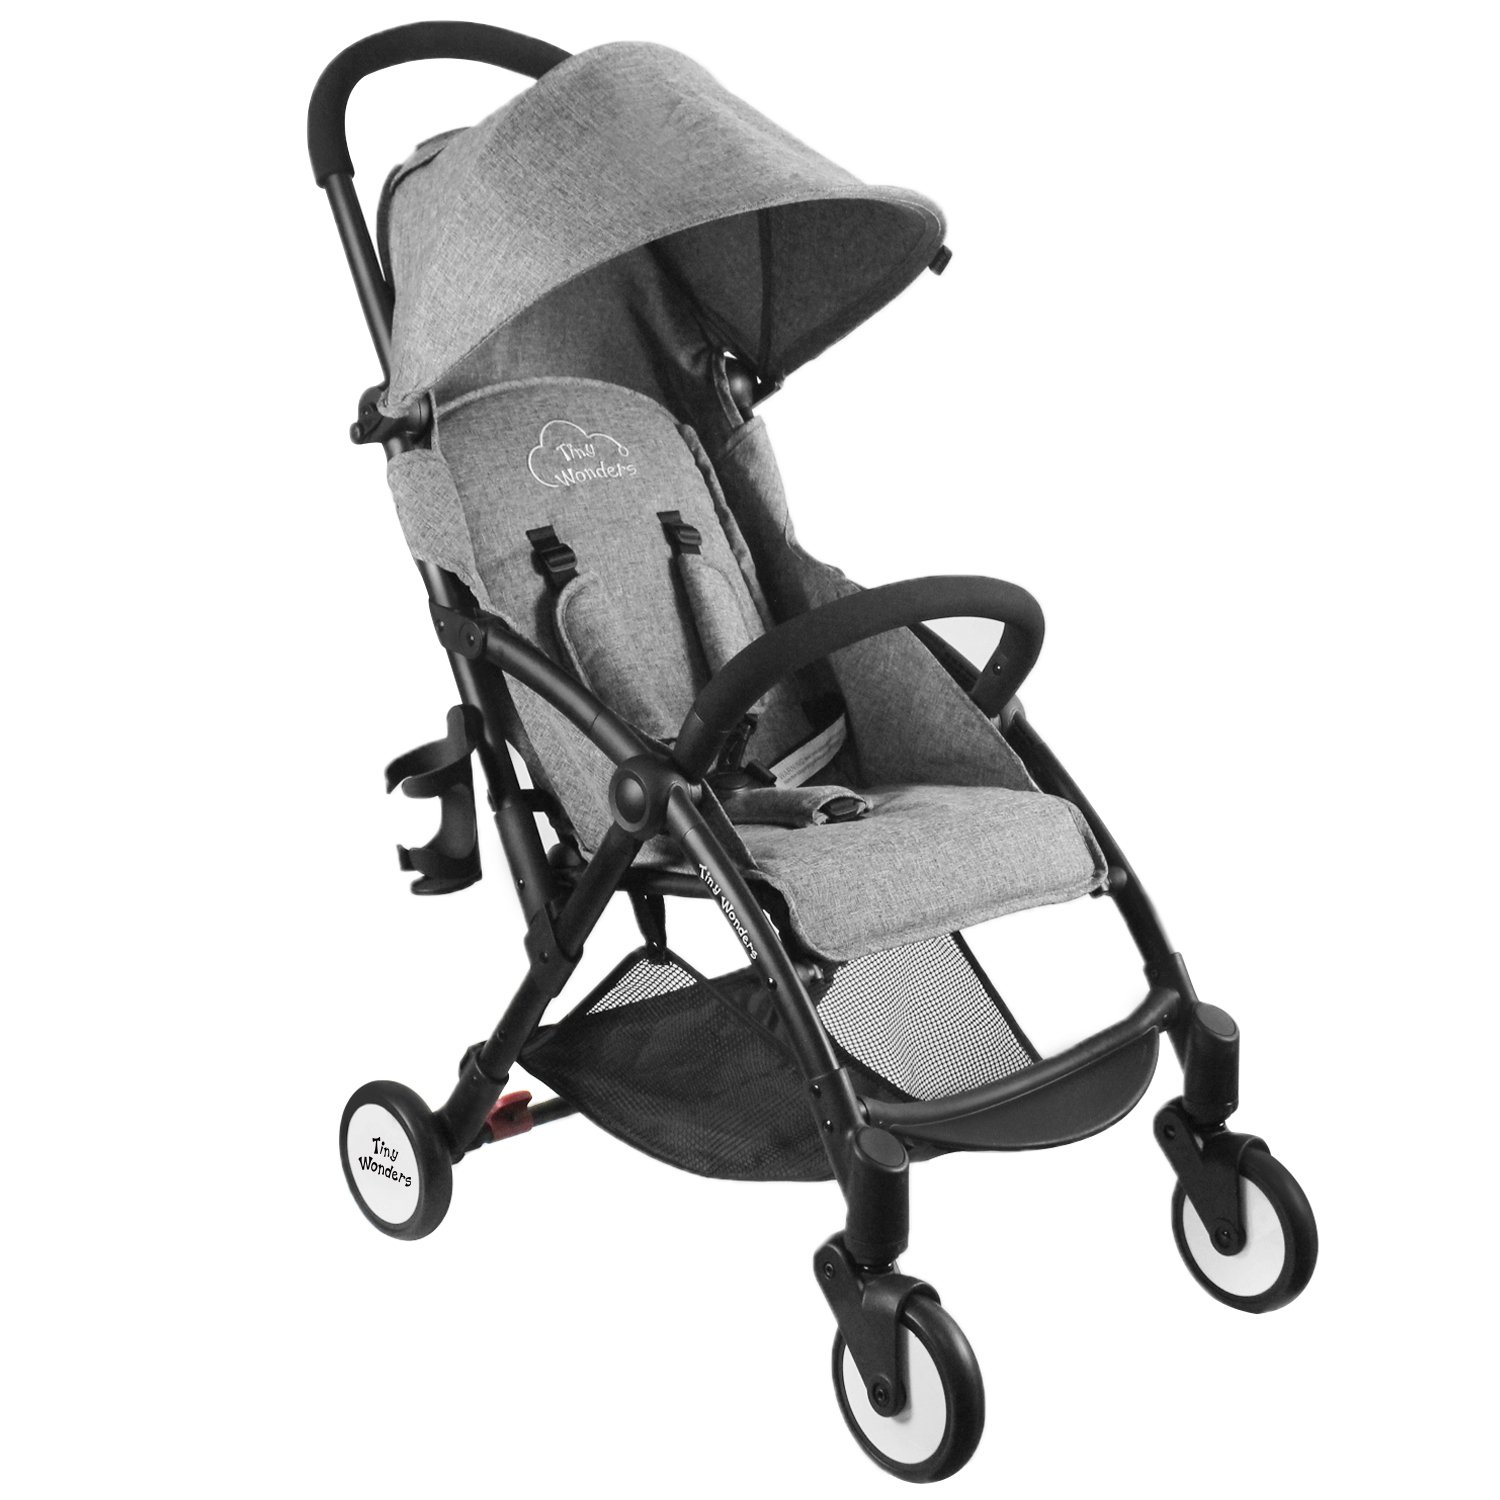 Single Baby Stroller with Dual-Brake, Portable LightWeight Travel Pram with Large Canopy For Infant, Toddler, Baby Boys and Girls, Unisex 3 Month Old and Up(Gray) - Tiny Wonders